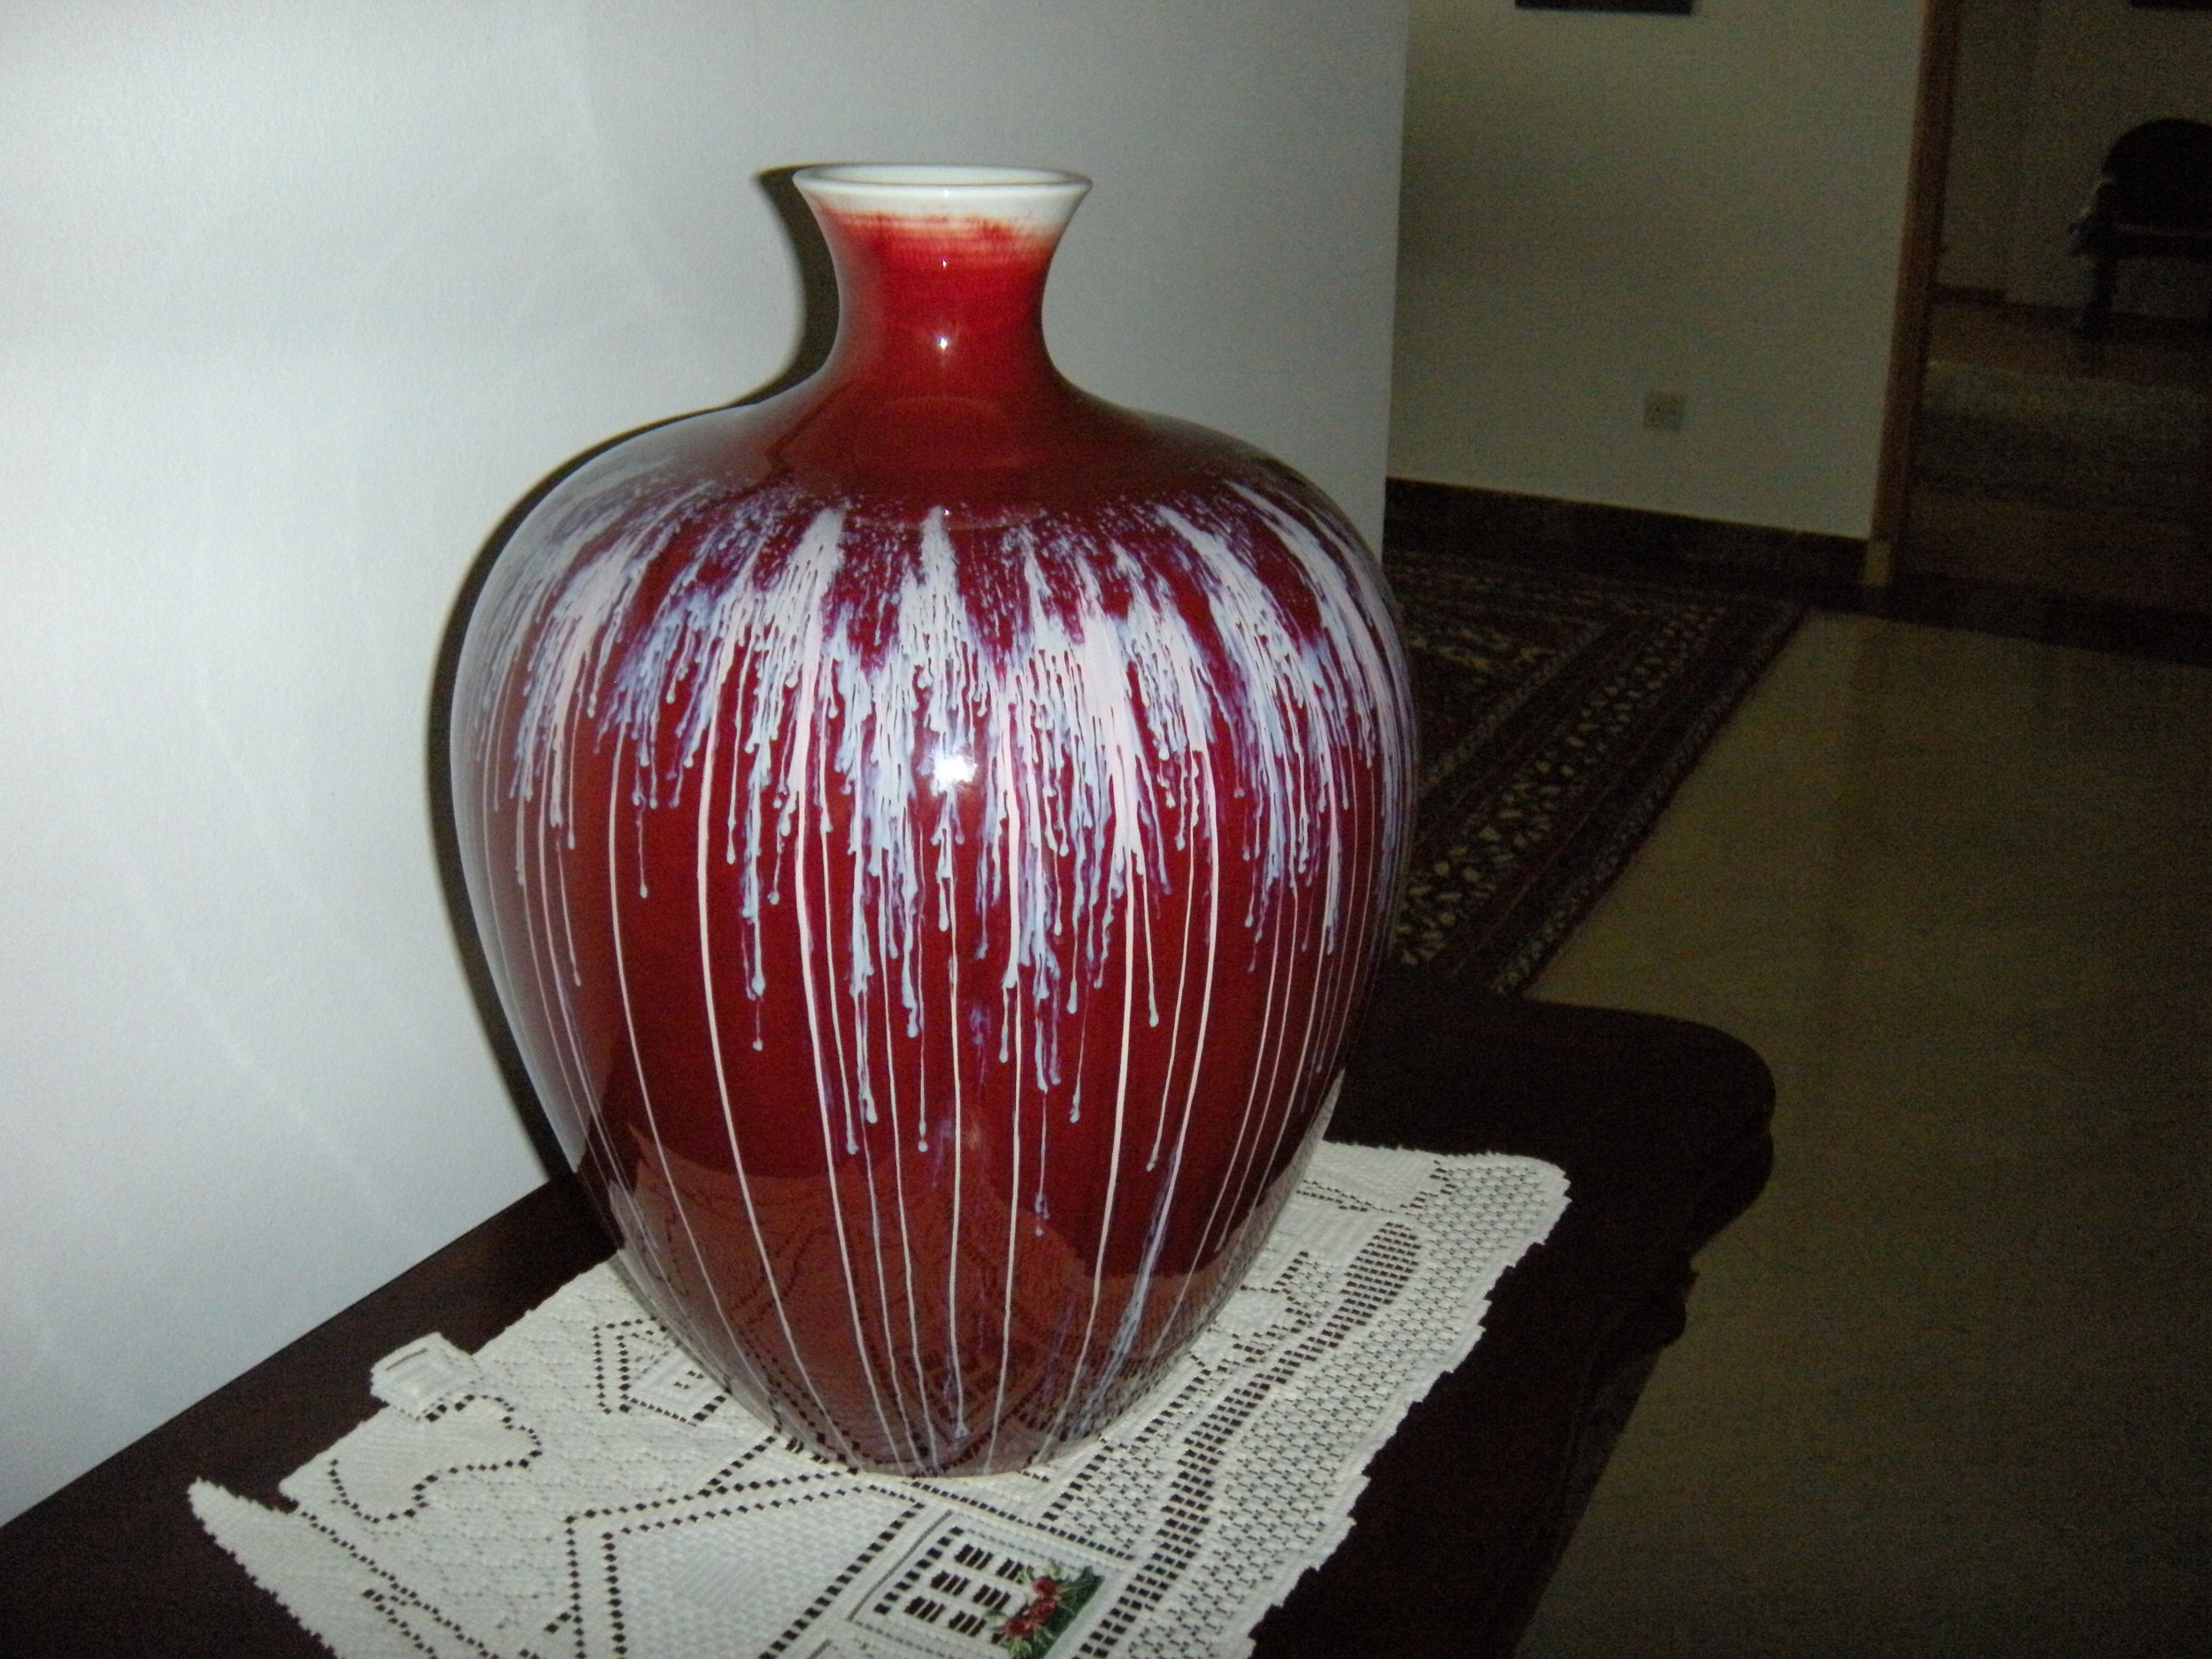 For the inventory--would you describe this as a vase or a jar?